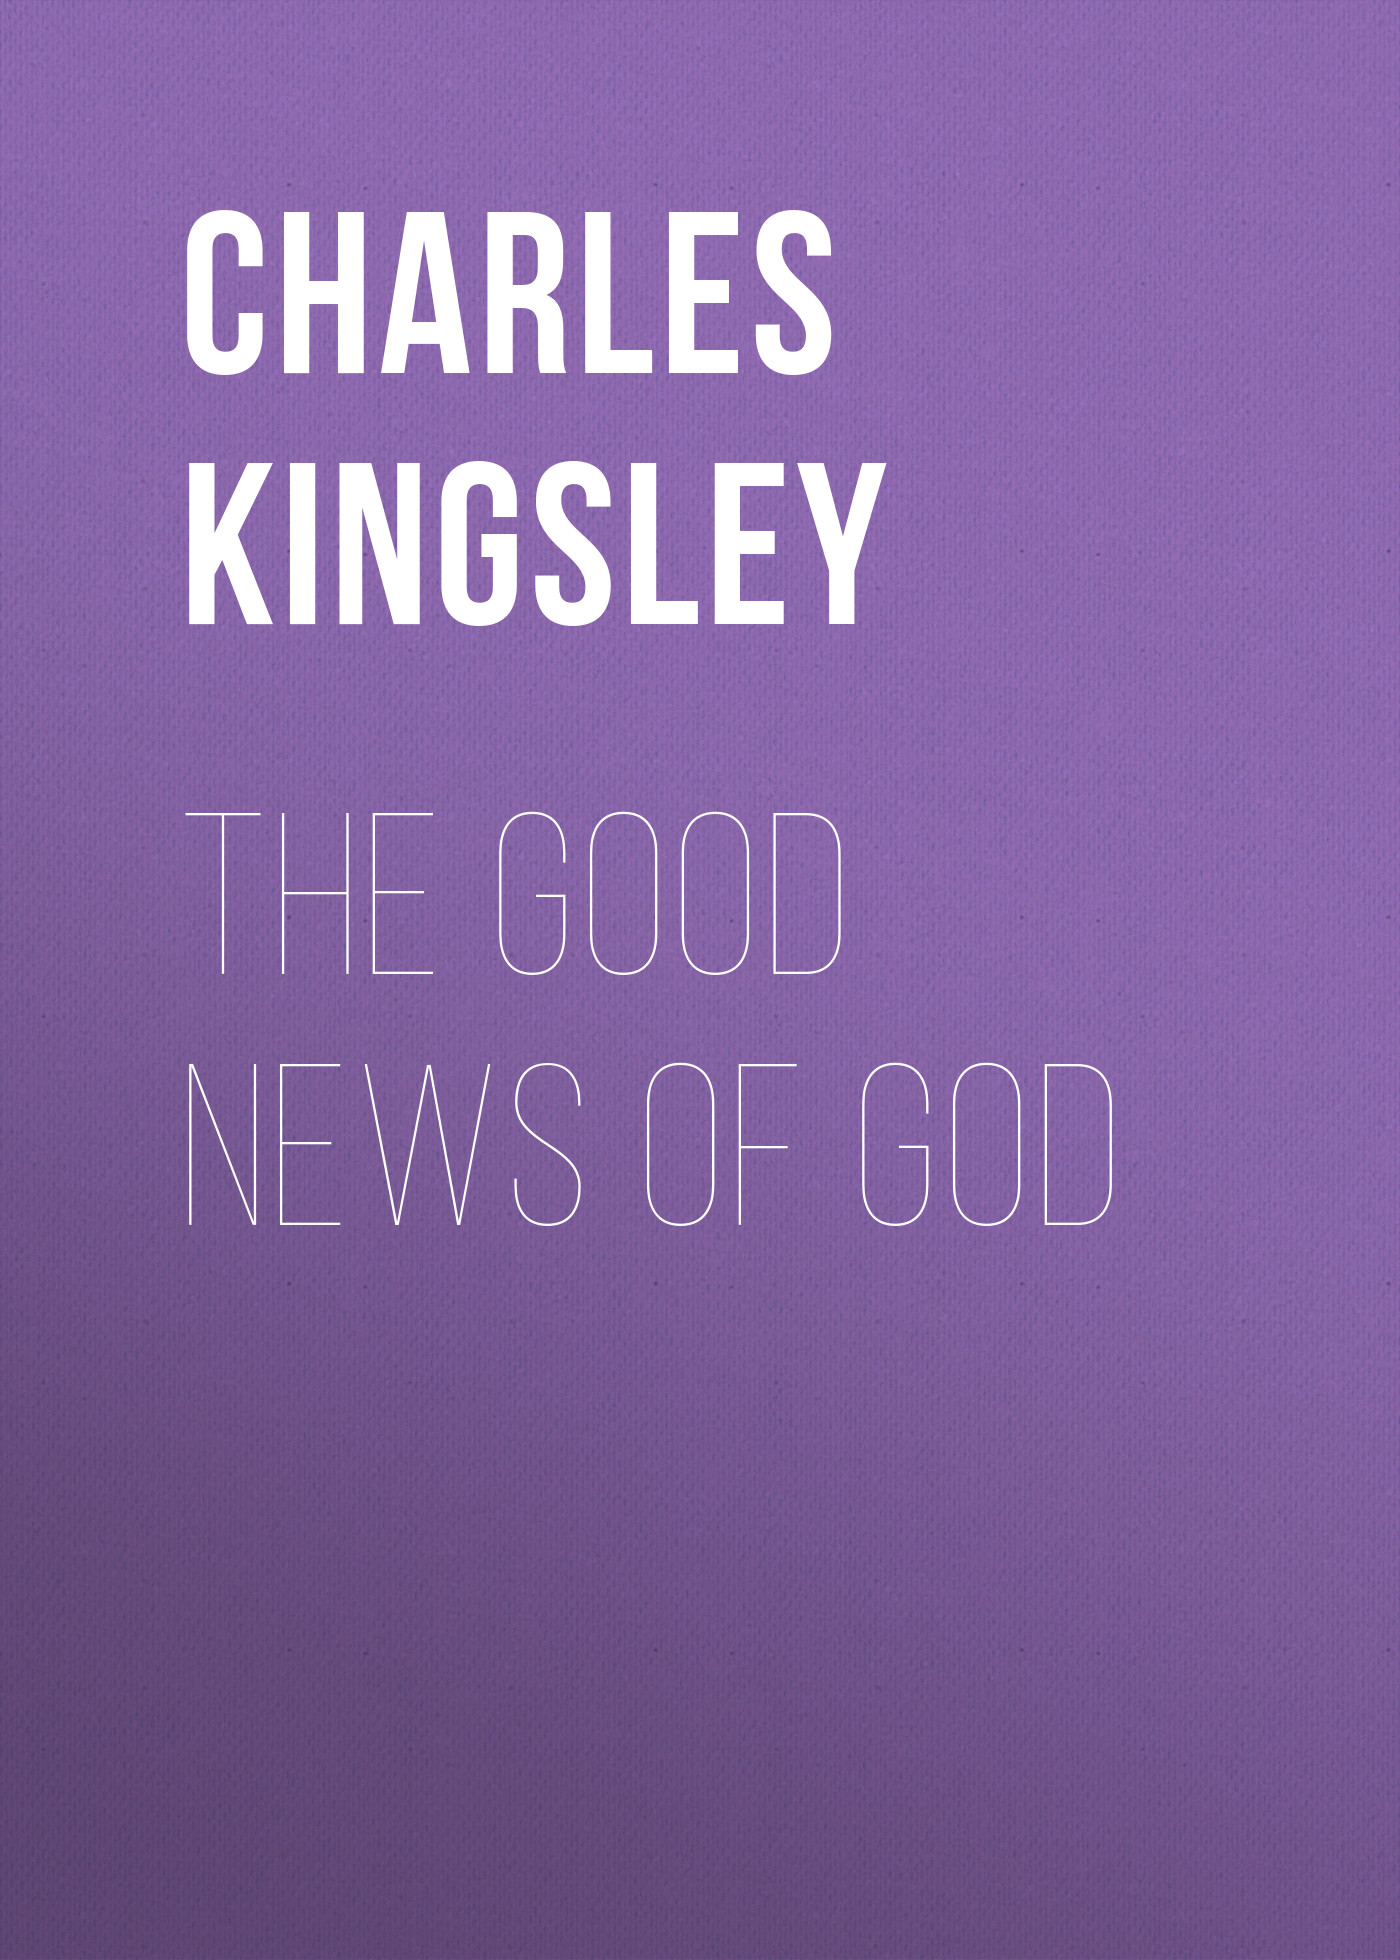 Charles Kingsley The Good News of God